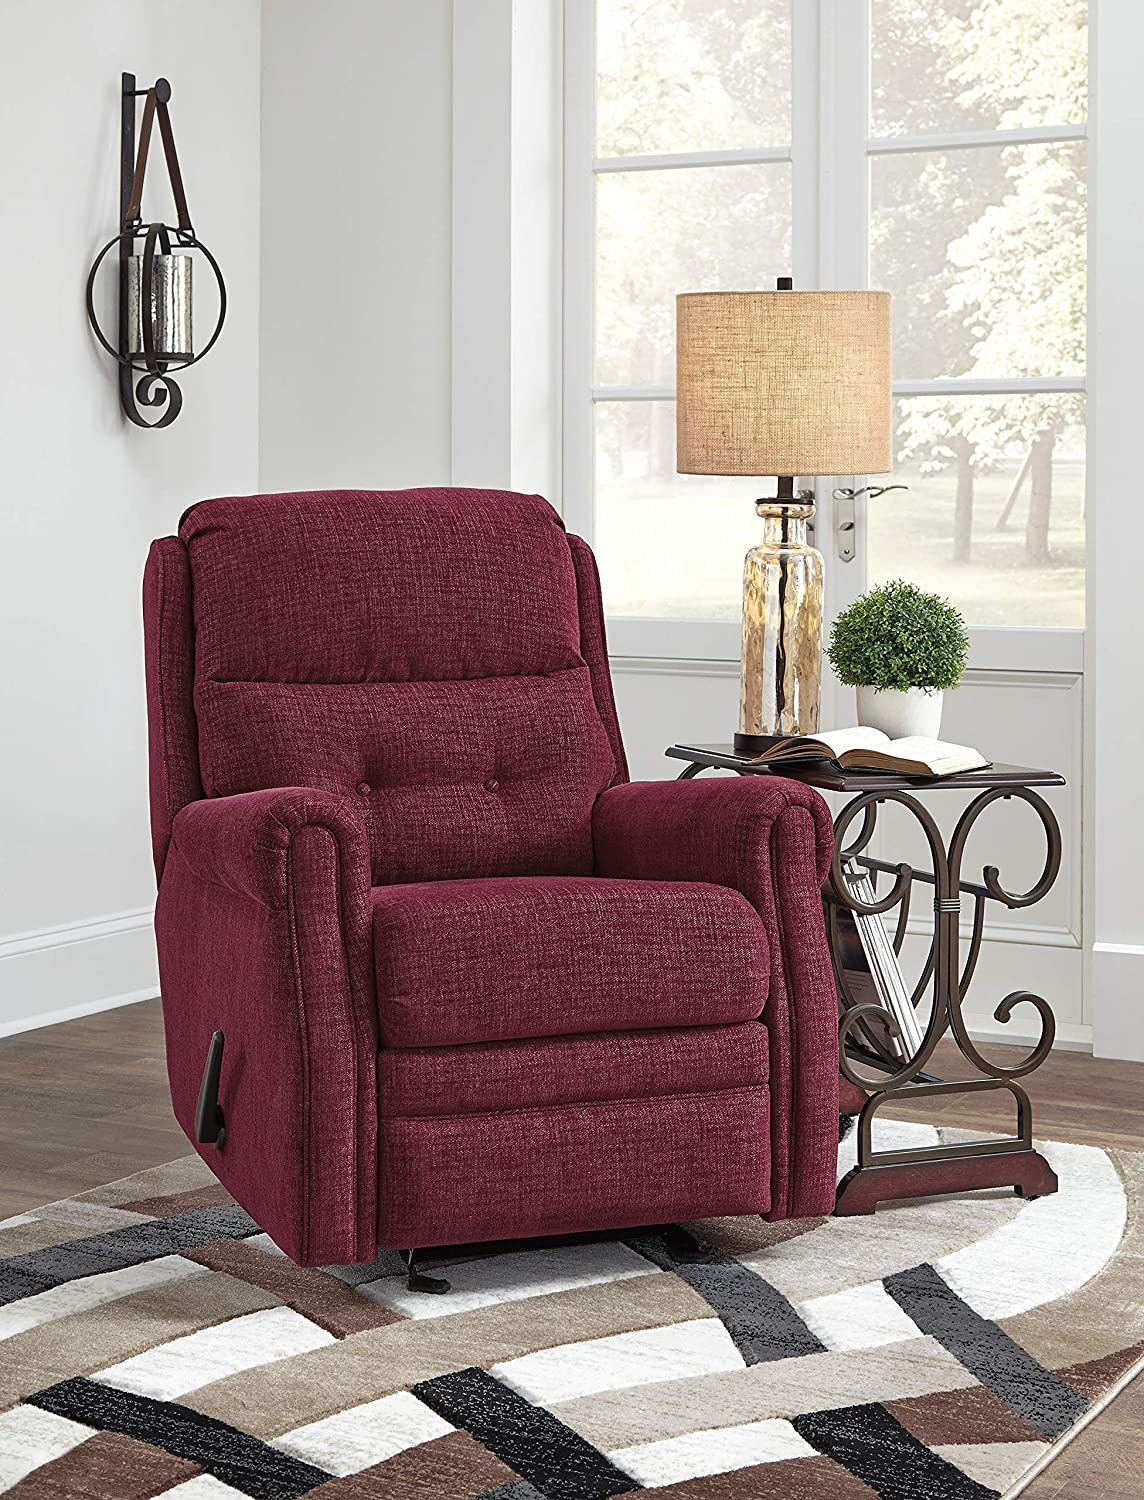 Signature Design by Ashley - Penzberg Upholstered Glider Recliner - One Pull Reclining - Burgundy